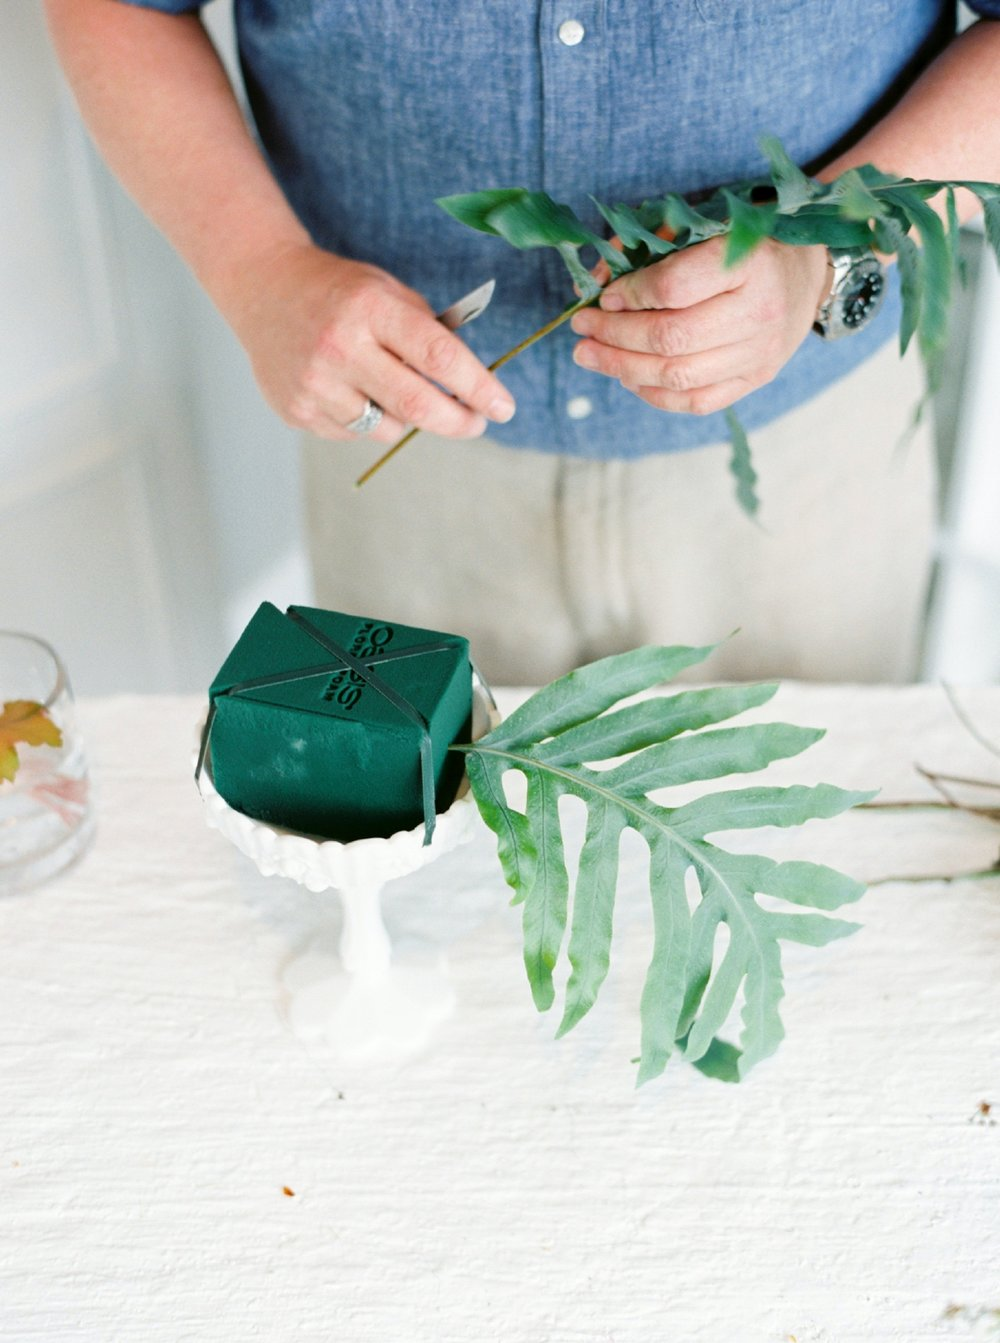 How To Make a Garden Fabulous Centerpiece Rosemary Beach Florist  Myrtie Blue  Shannon Griffin_0001.jpg